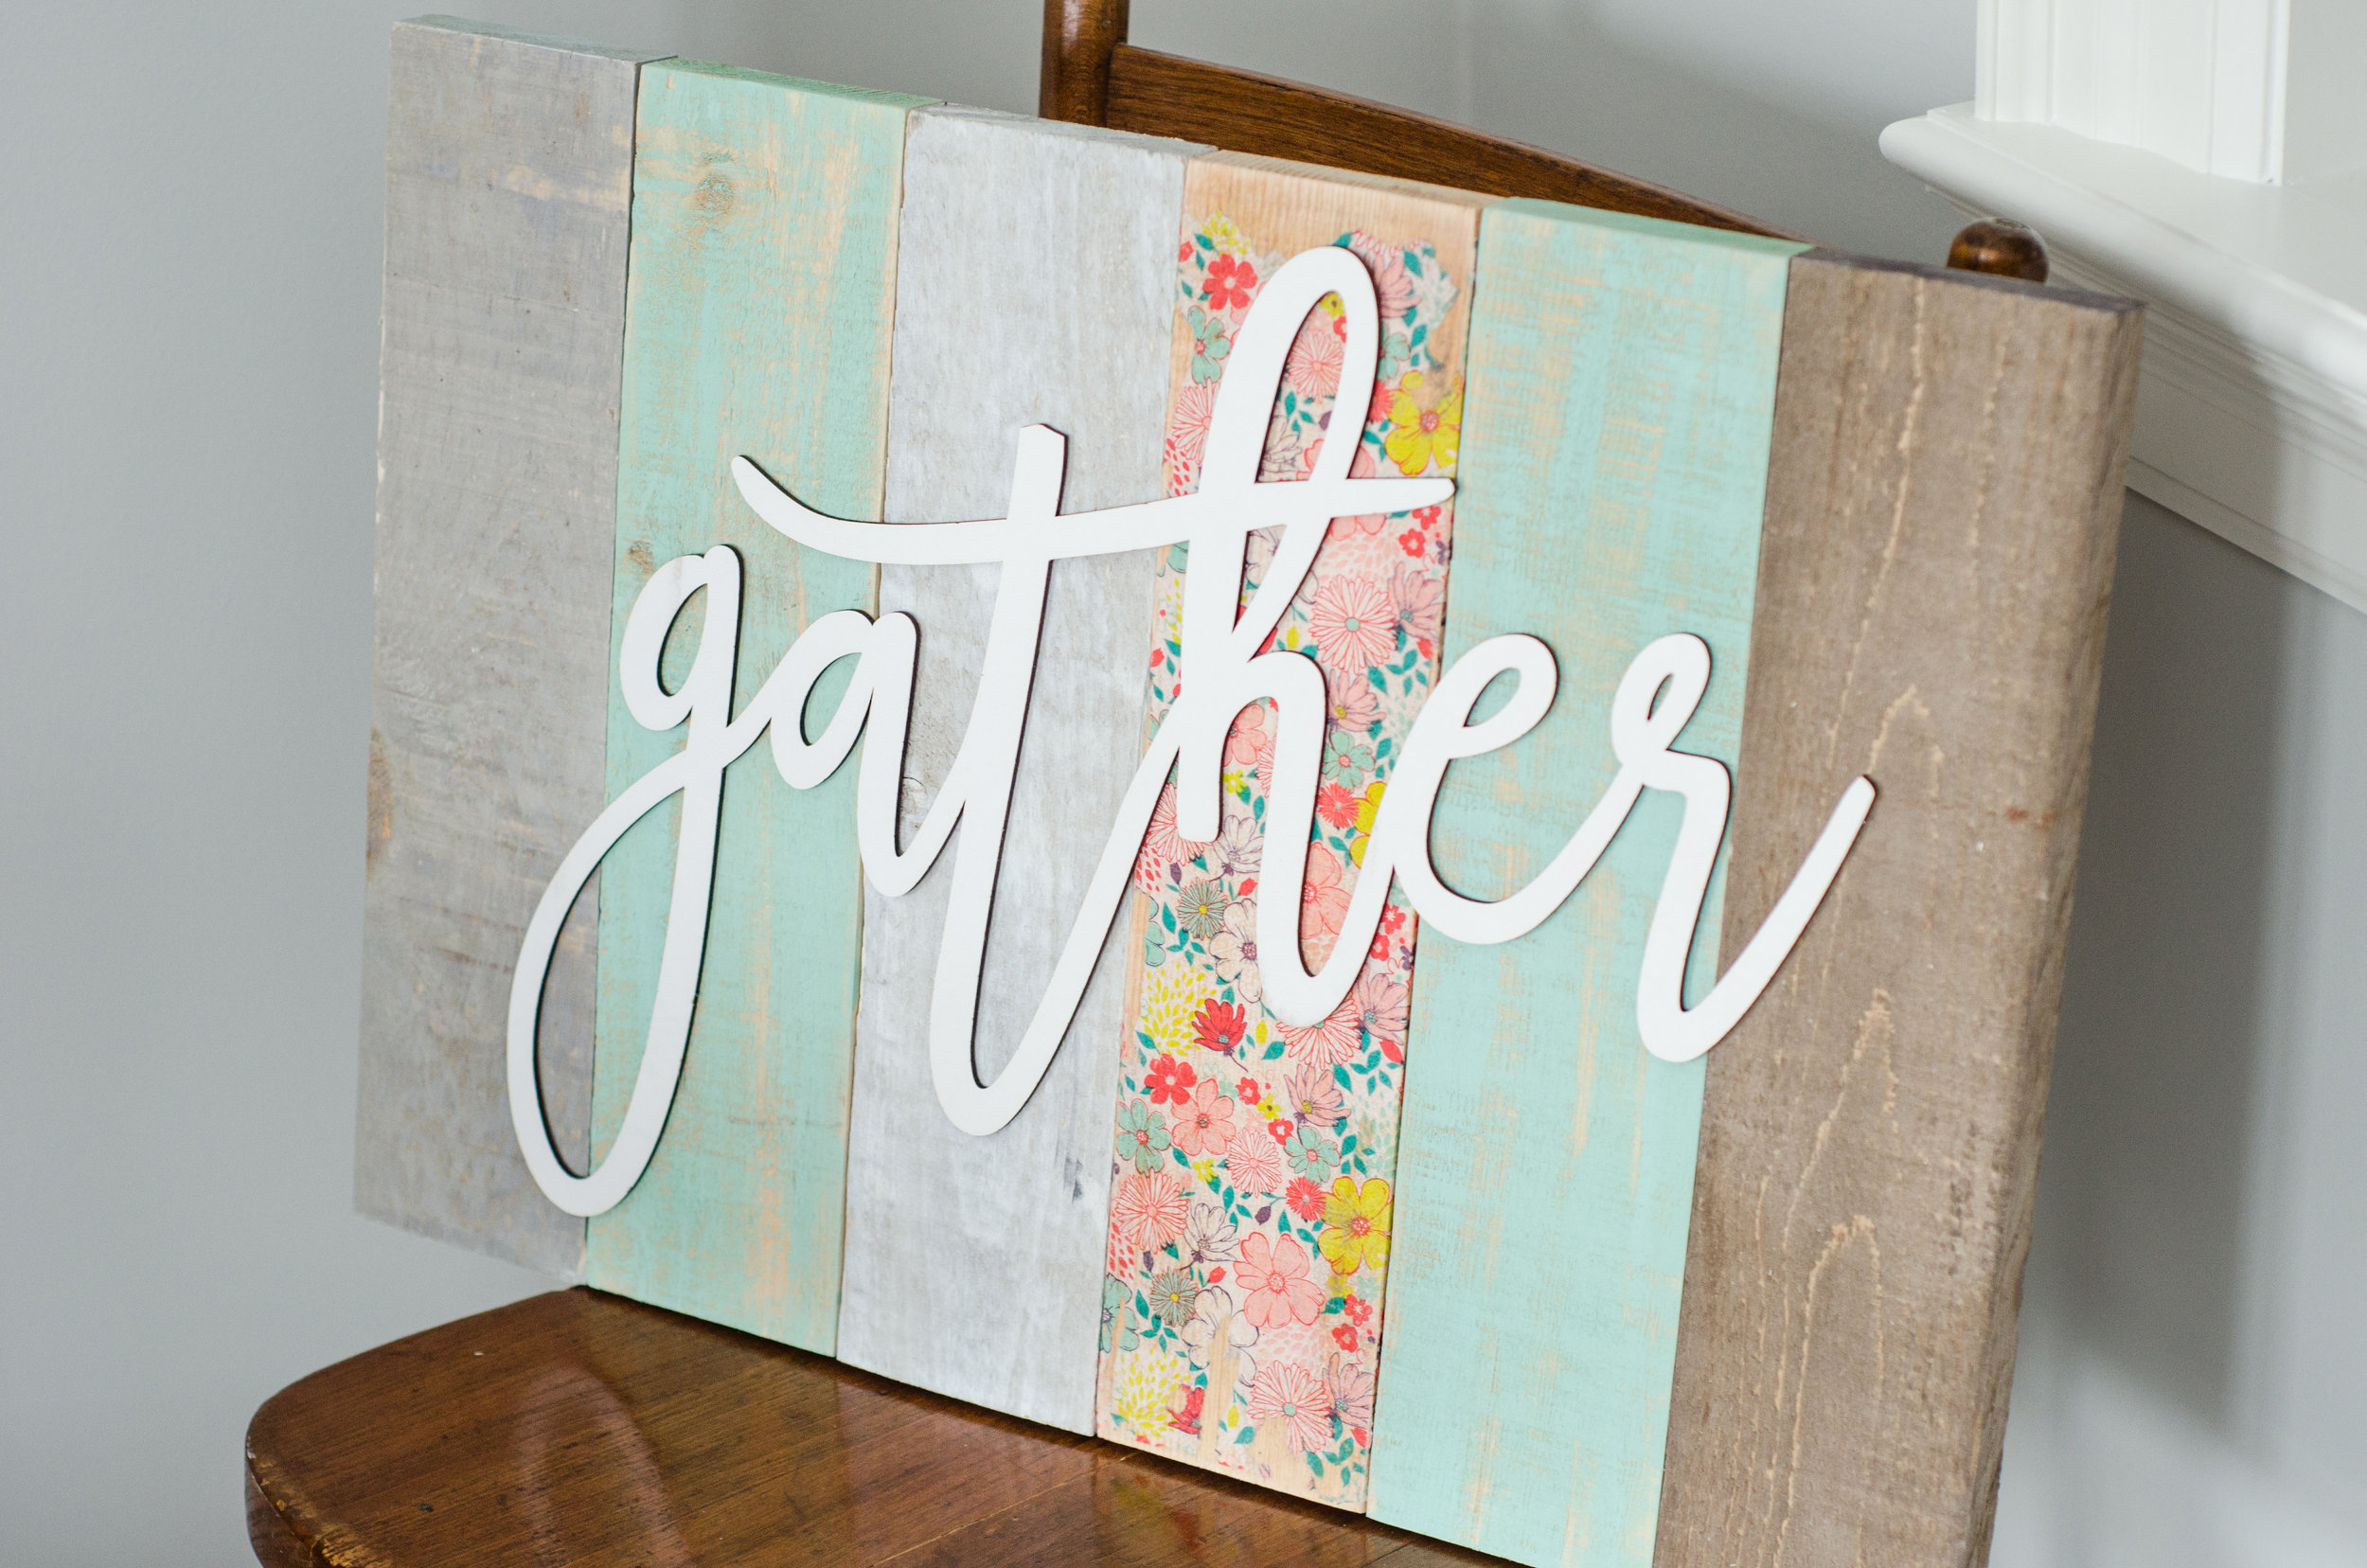 Barnboard Signs - Friday March 23rd, 1-4pm!